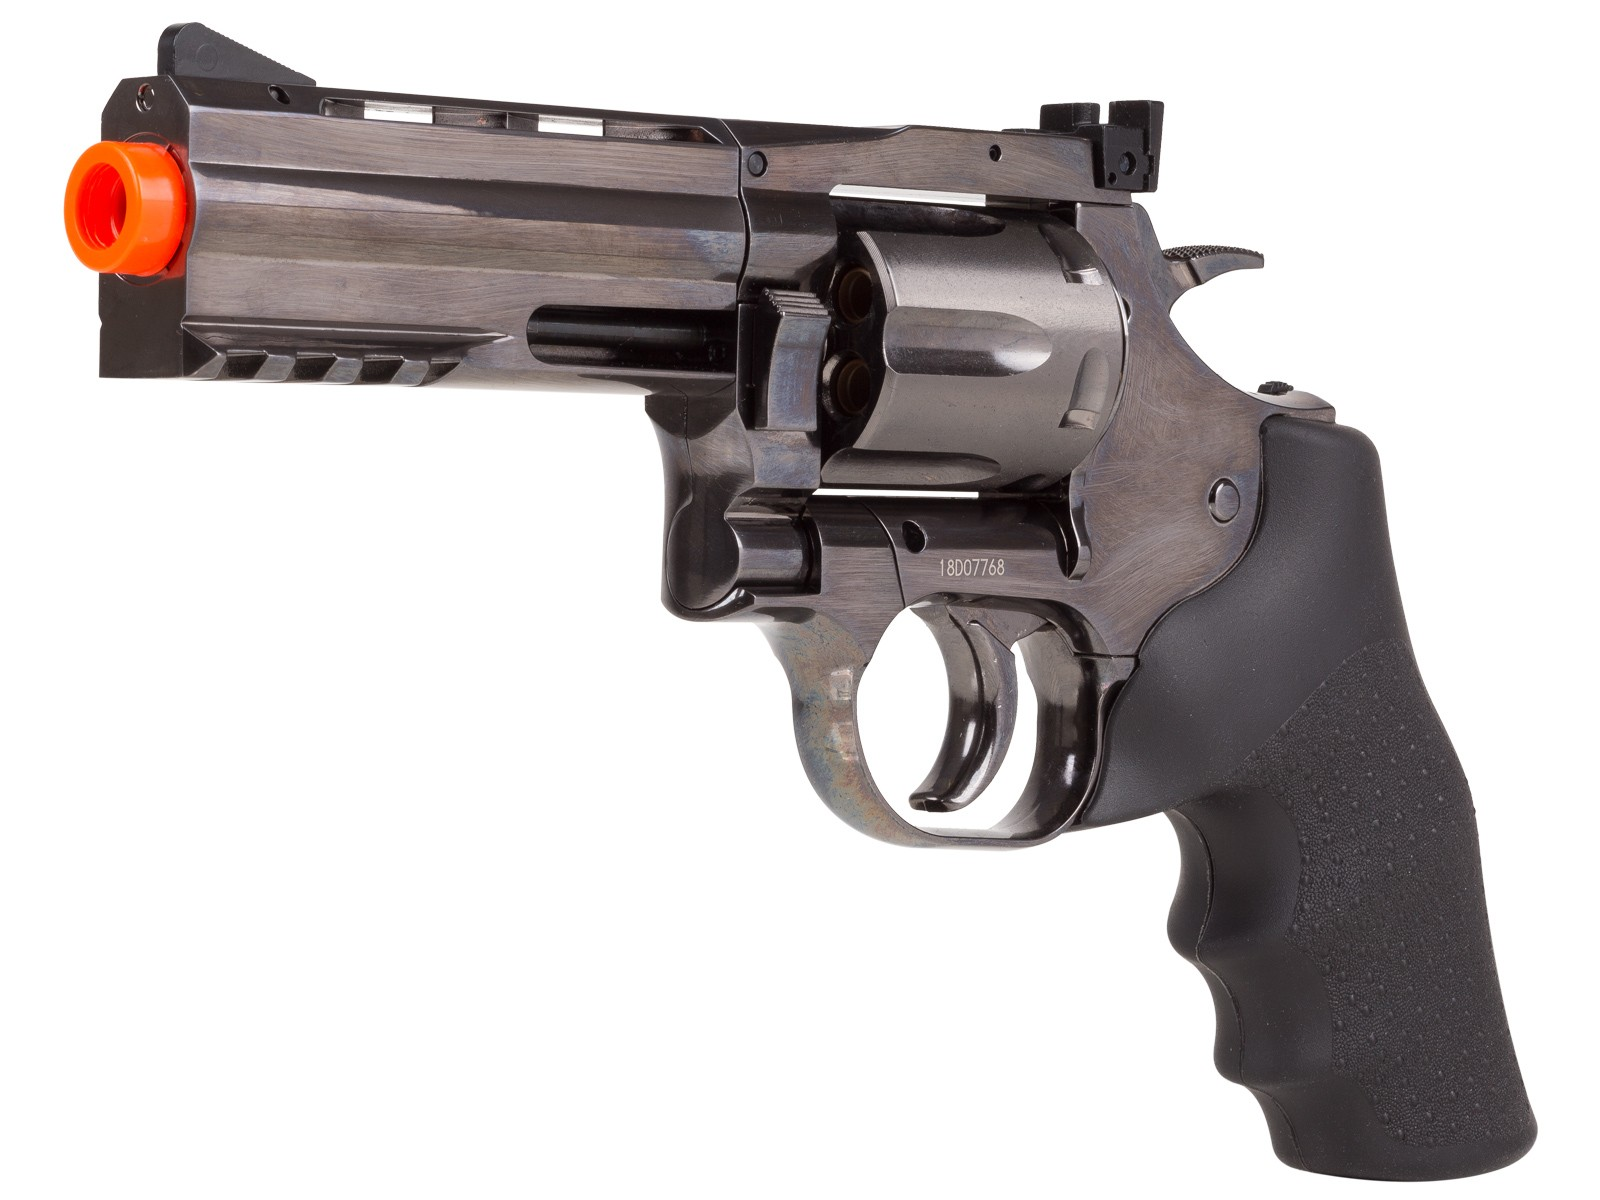 Dan_Wesson_715_4_CO2_Airsoft_Revolver_Steel_Grey_6mm